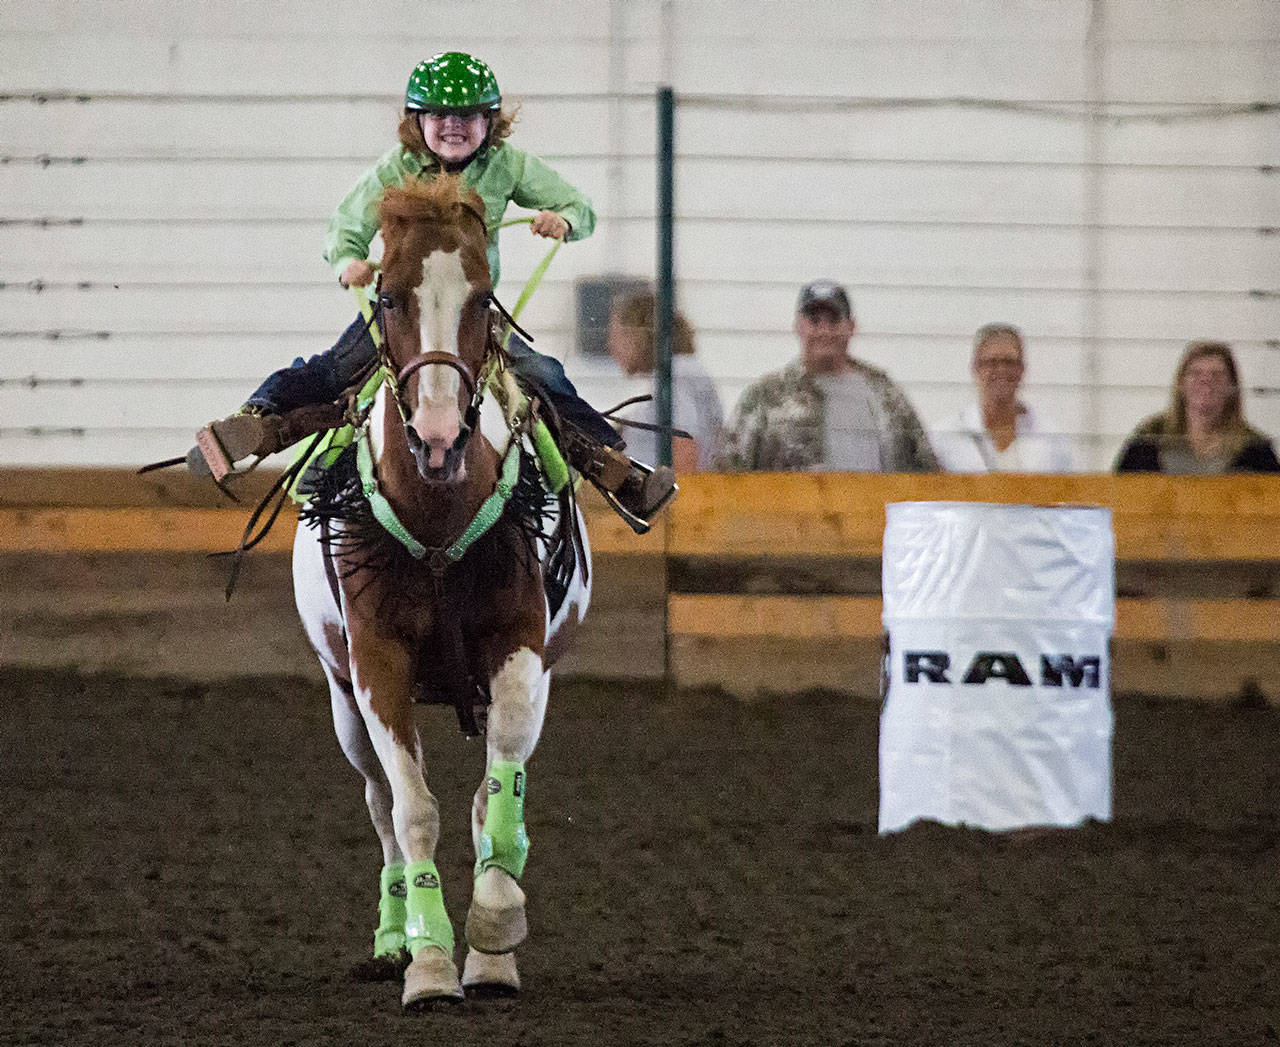 Teagan Petersen, 6, spurs her horse on to the finish line during barrel racing on the last day of Evergreen State Fair on Monday in Monroe. (Andy Bronson / The Herald)                                  Teagan Petersen, 6, spurs her horse on to the finish line during barrel racing on the last day of Evergreen State Fair on Monday in Monroe. (Andy Bronson / The Herald)